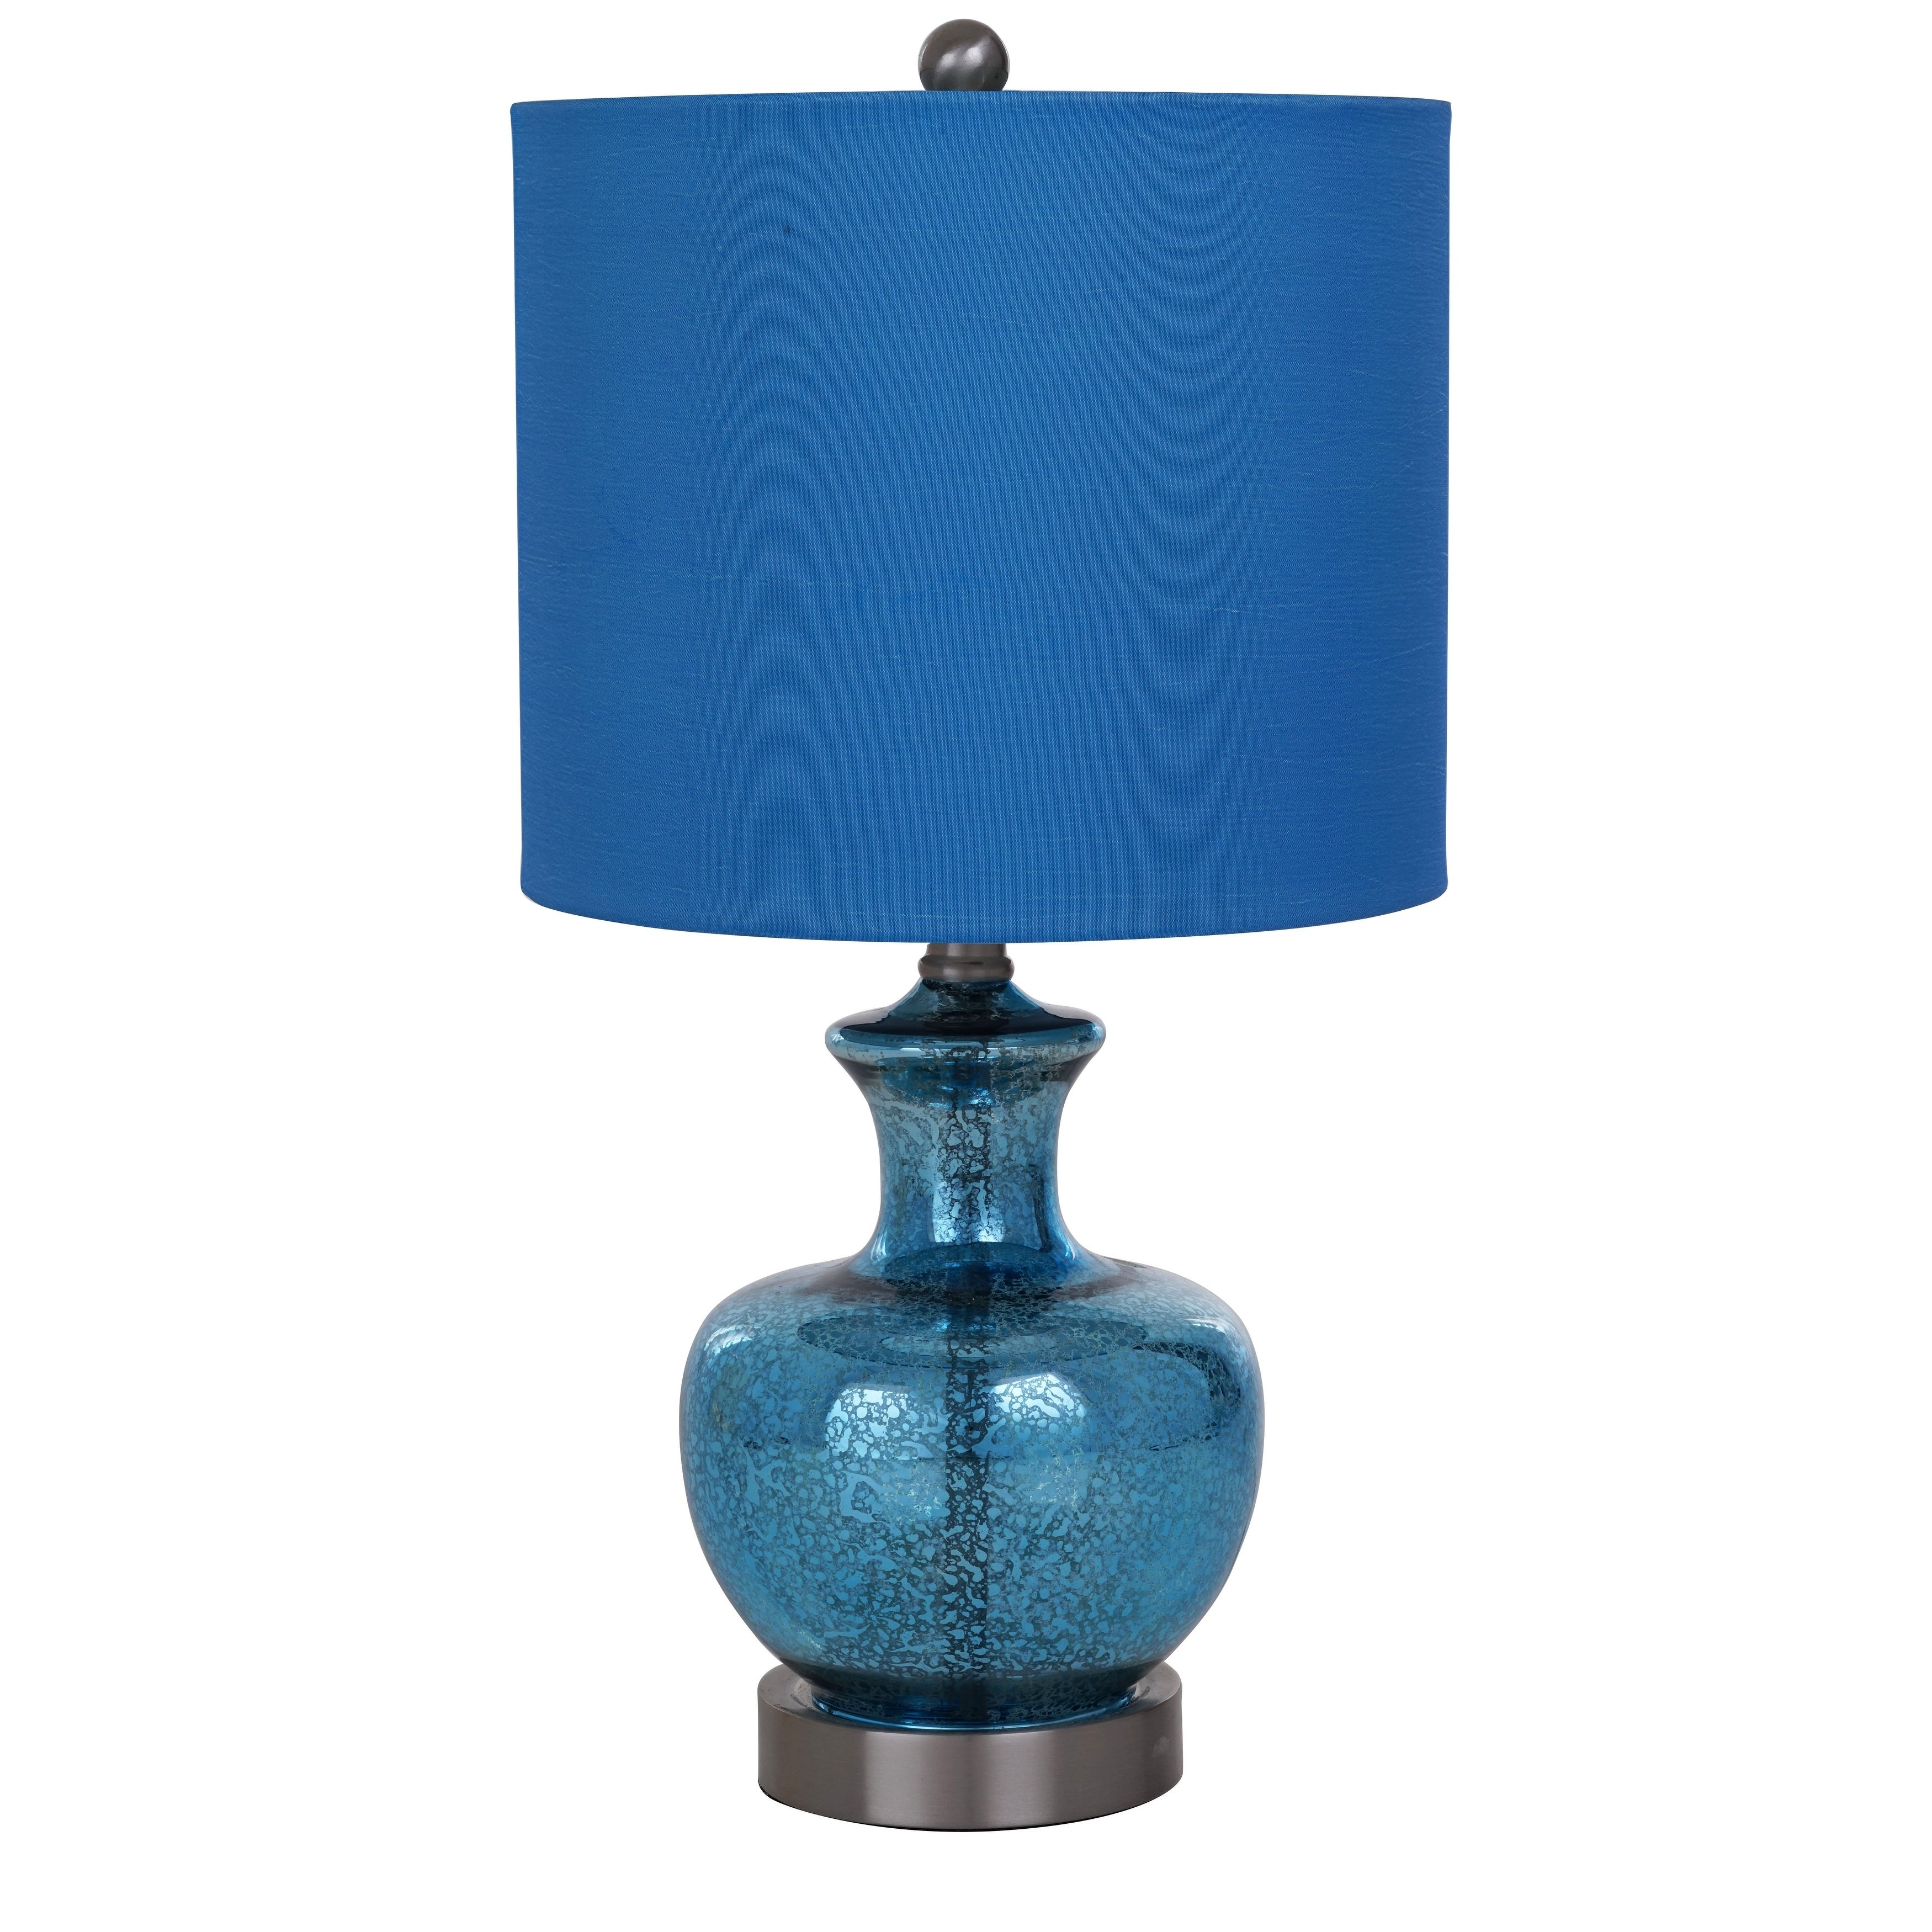 Buy Catalina Lighting Table Lamps Online at Overstock.com   Our Best ...